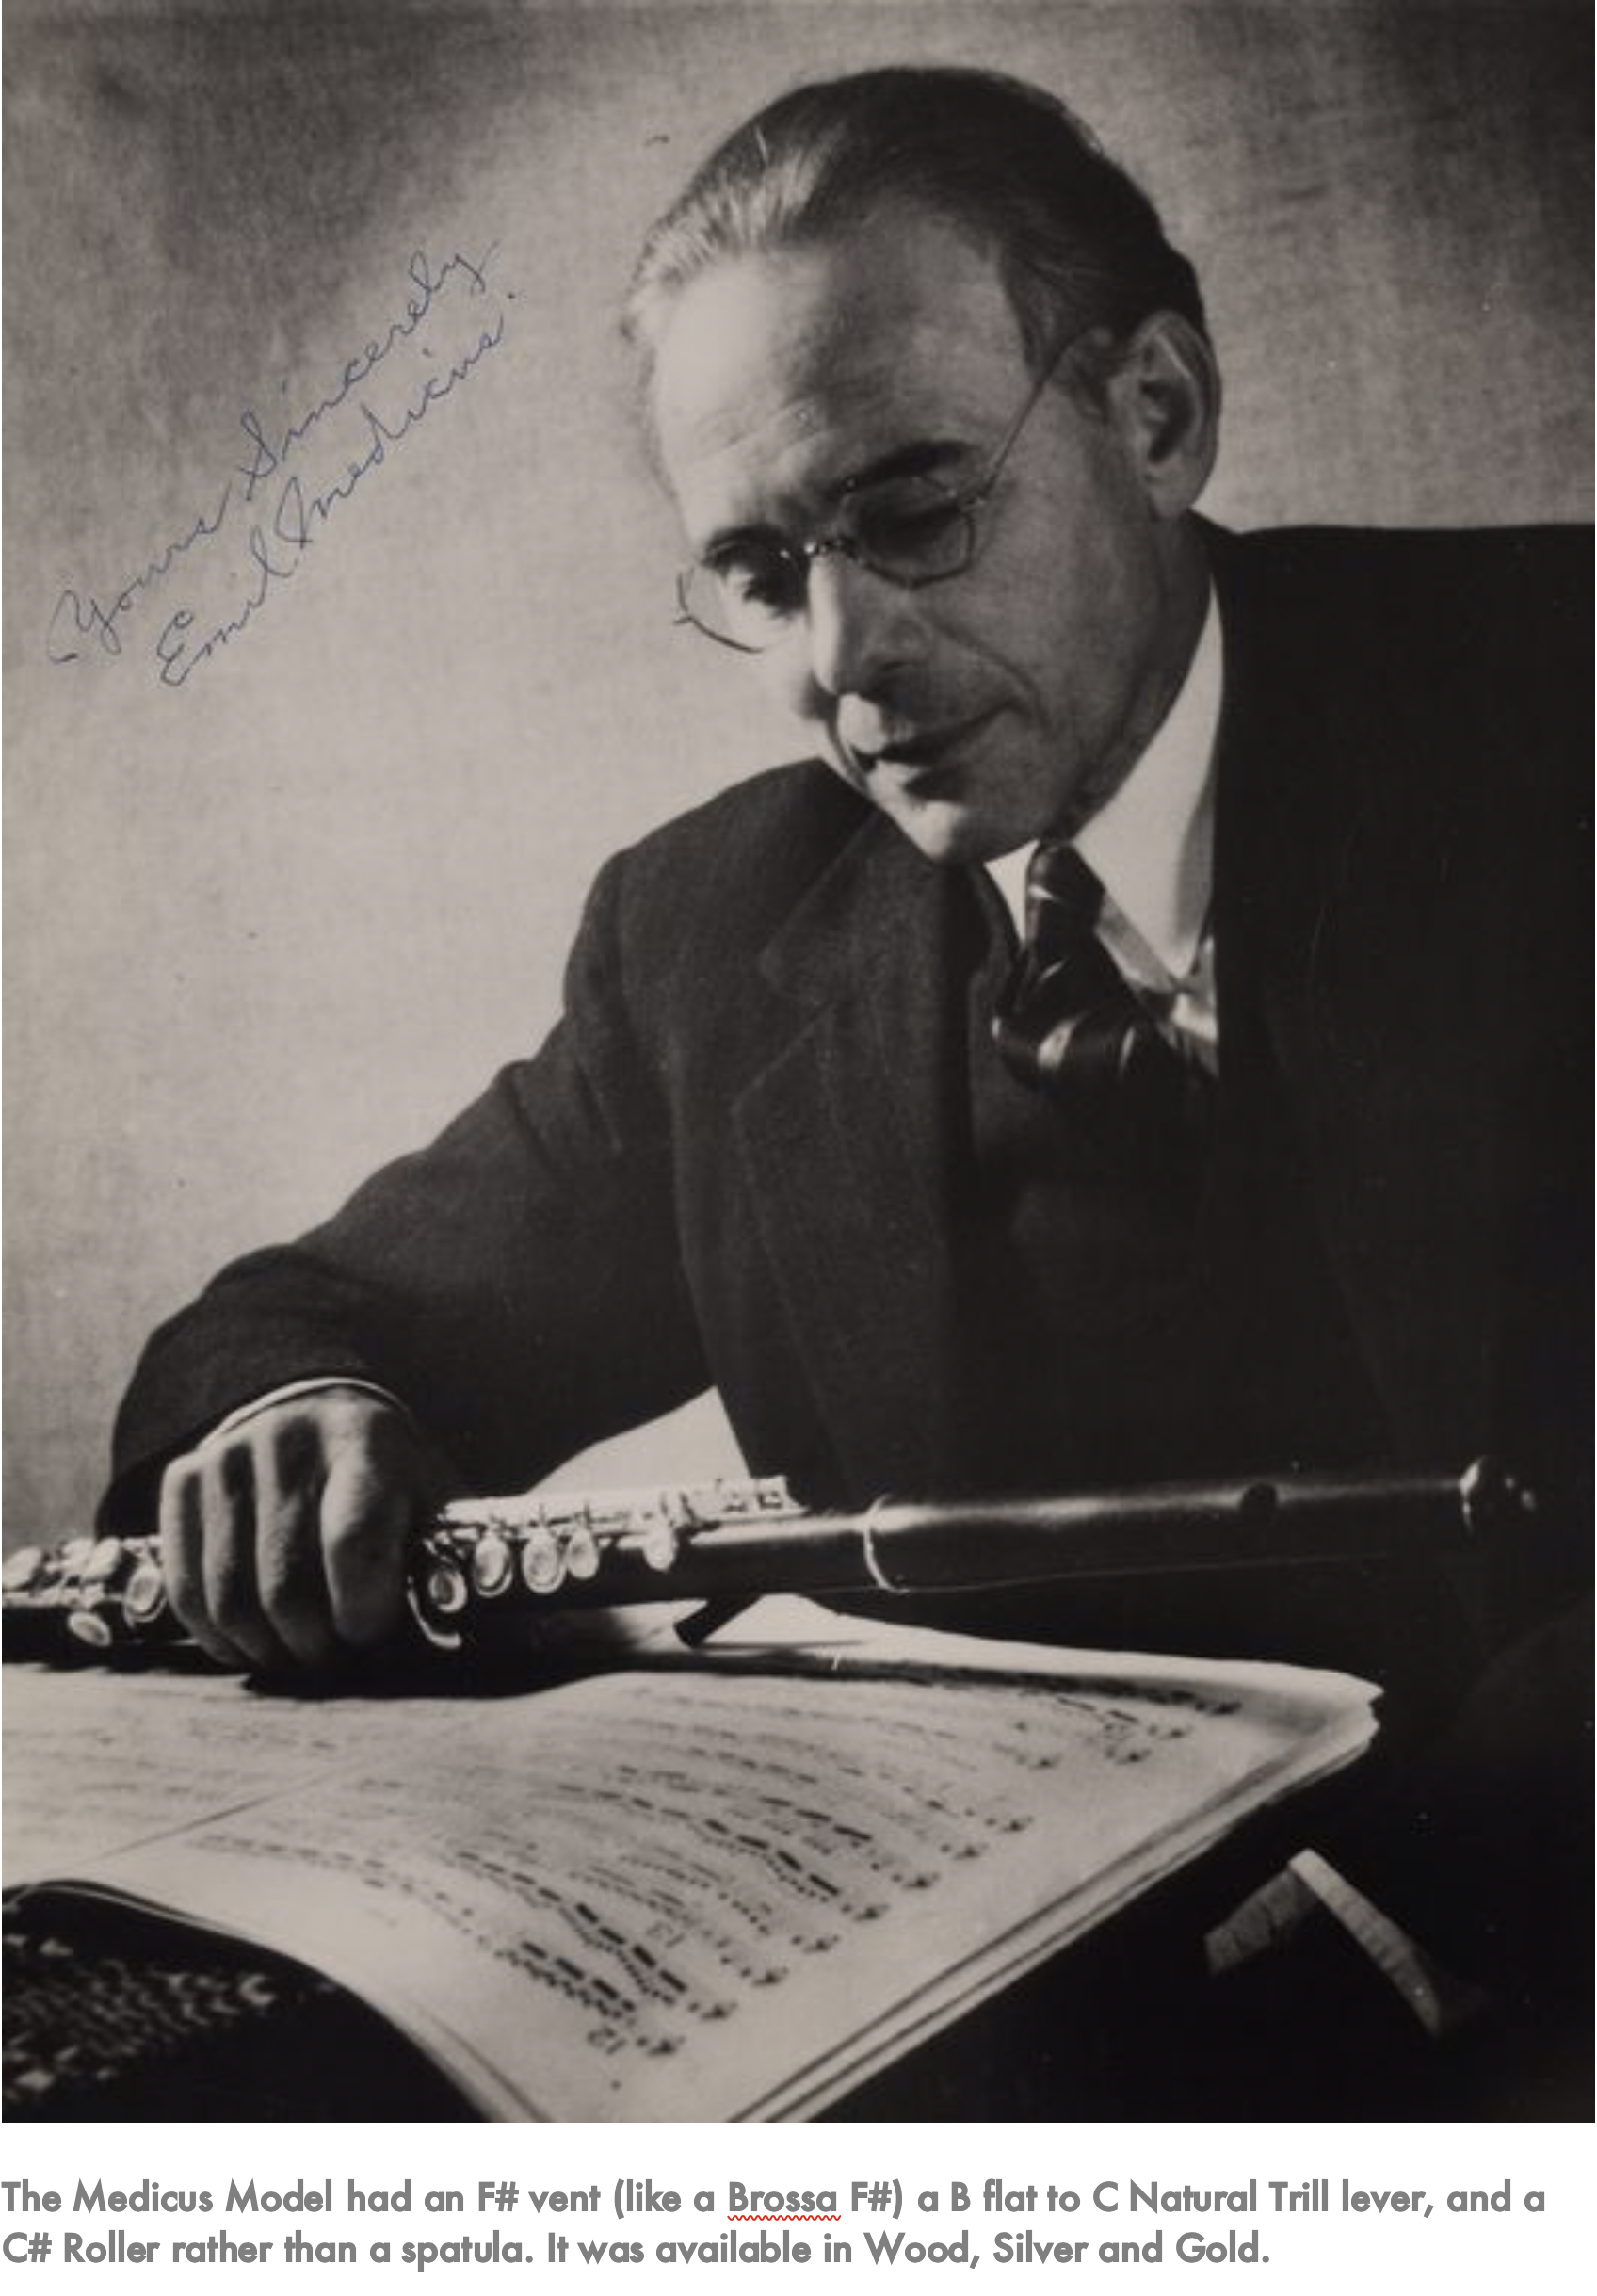 1915 – Haynes makes their first solid silver piccolo #3188 1916 – Collaboration with the flutist Emil Medicus (pictured)1918 – Workshop moves to 34 Columbus Avenue, Boston1918 – Responding to many requests from American Bands - Haynes makes their first A flat Piccolo #45461918 – Wooden flute production ceases except for special orders -